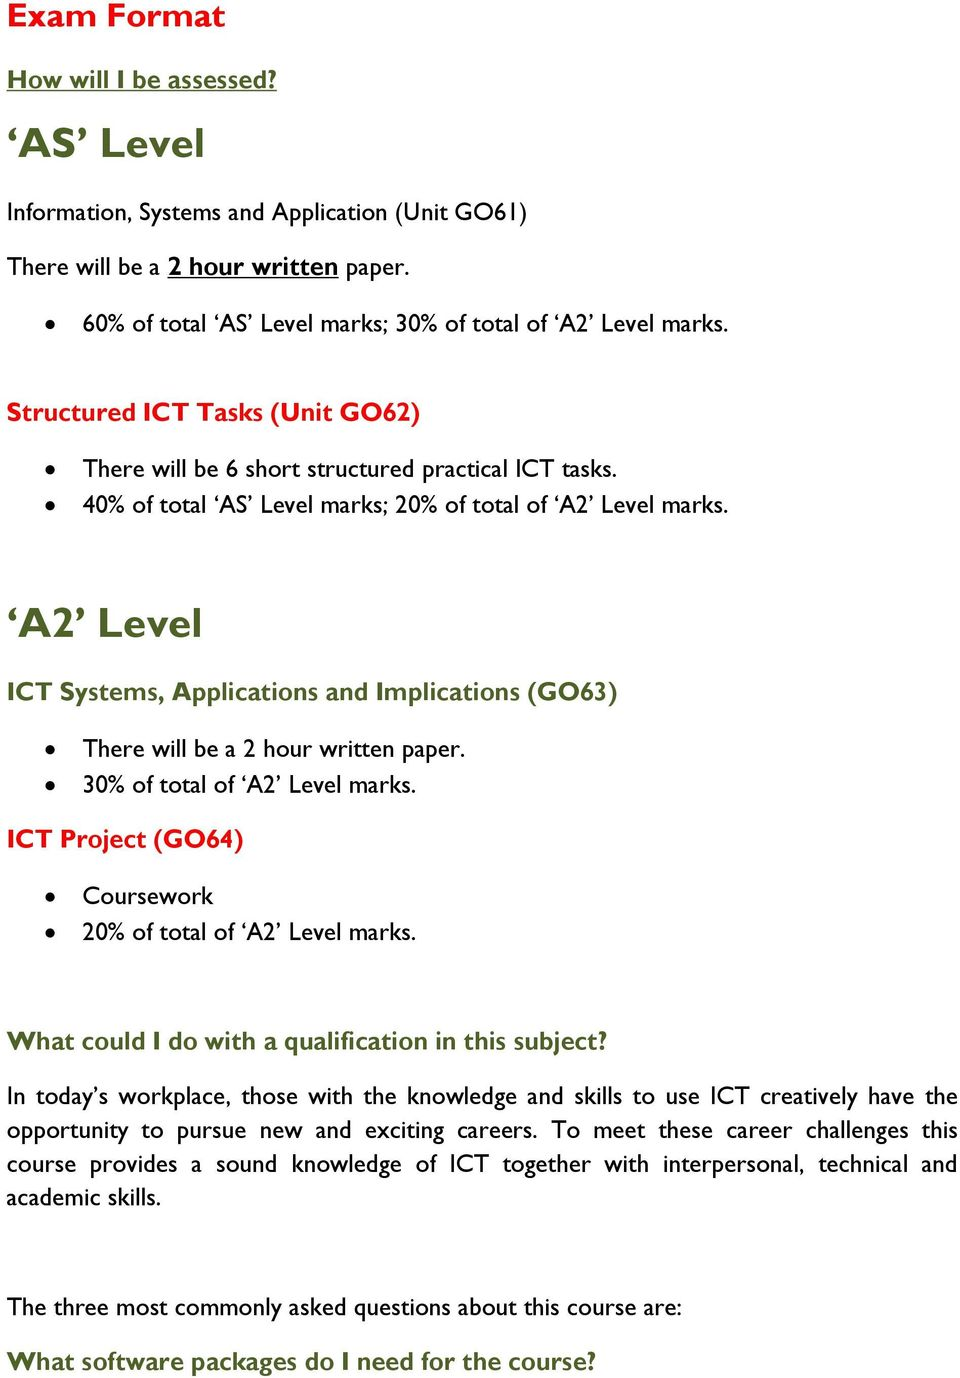 A2 Level ICT Systems, Applications and Implications (GO63) There will be a 2 hour written paper. 30% of total of A2 Level marks. ICT Project (GO64) Coursework 20% of total of A2 Level marks.